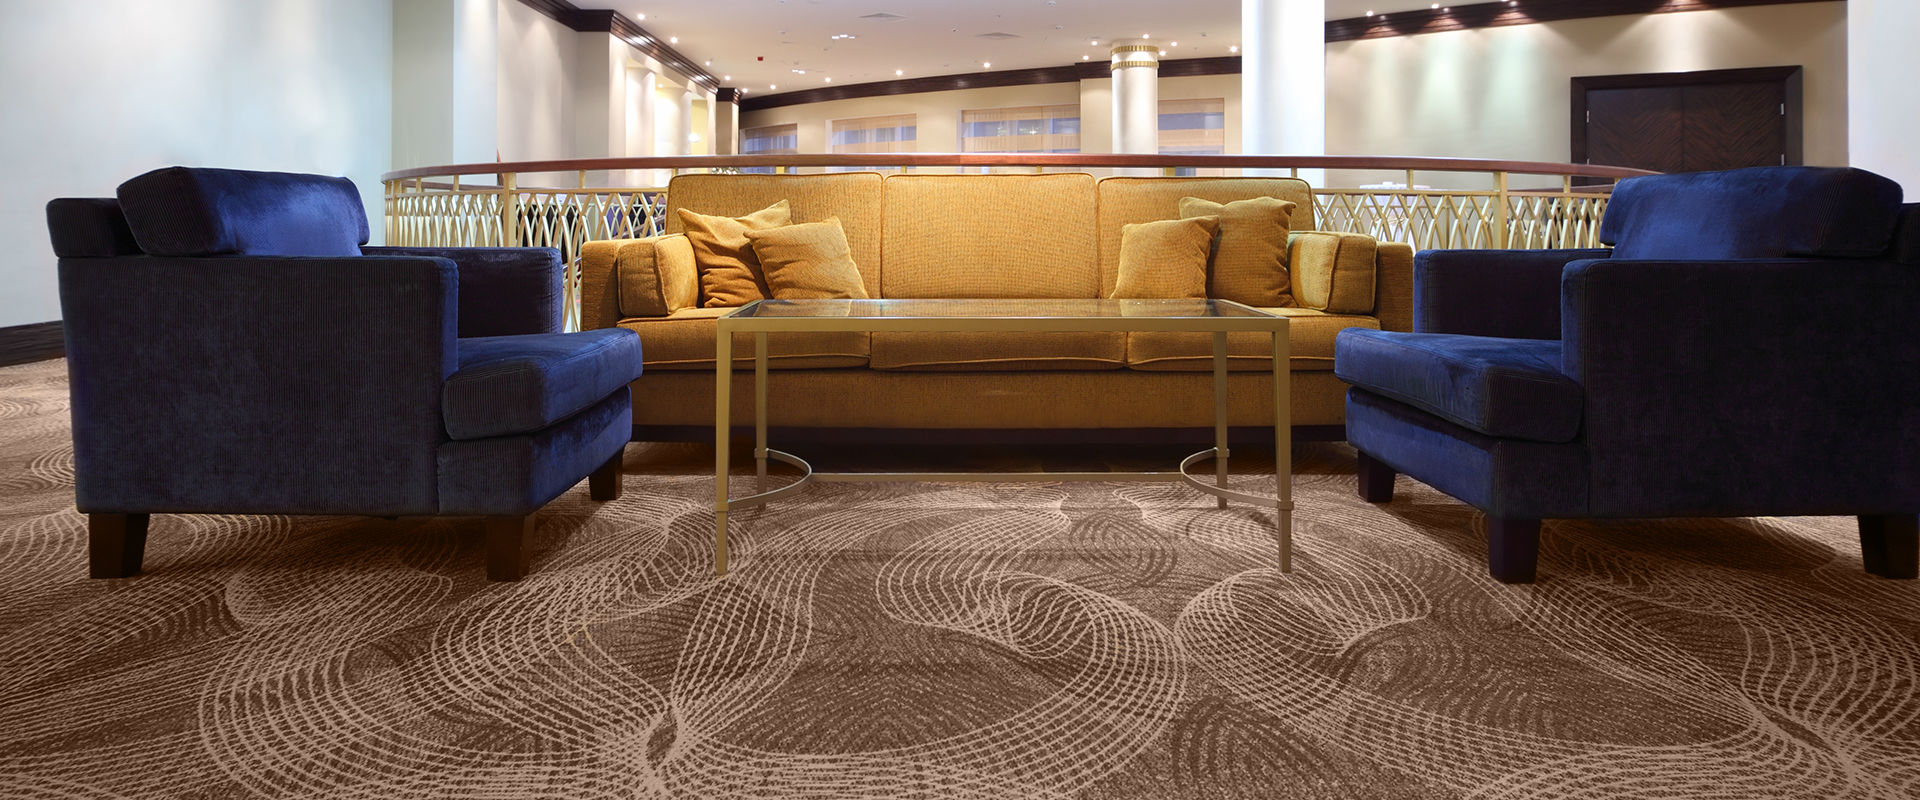 Commercial Carpet Cleaning Glasgow, Scotland